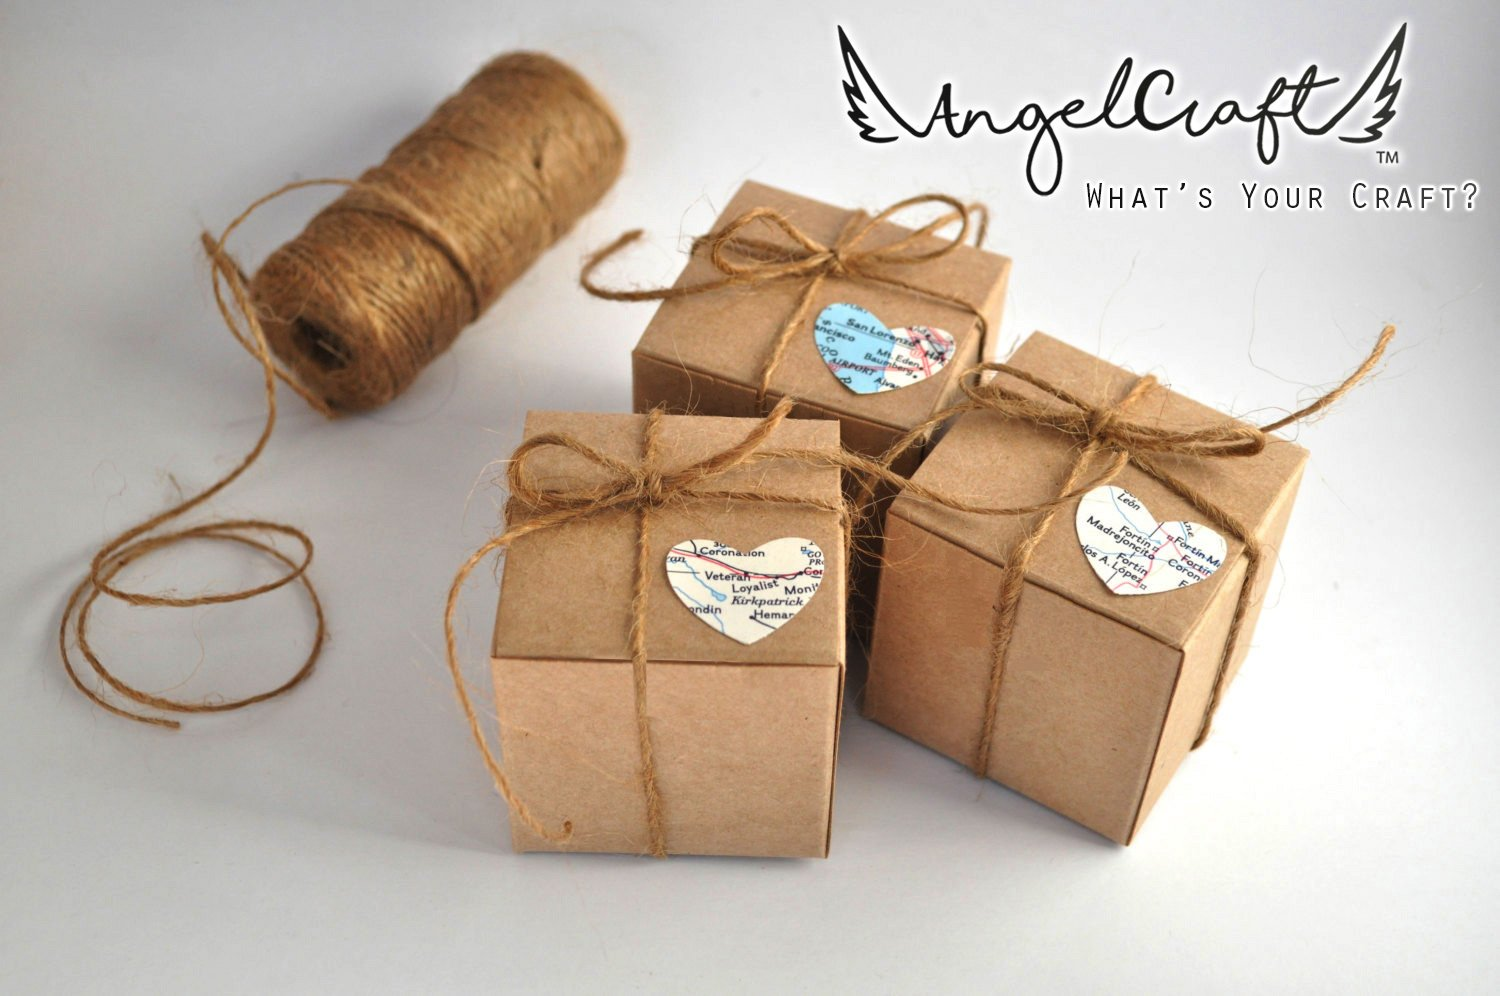 ANGELCRAFT Brown Kraft Gift Box 3x3x3 inch Cupcake Box, Wedding Party Favor, Bakery Box, Holiday Gift Box, Party Boxes 50-Pack by AngelCraft (Image #5)